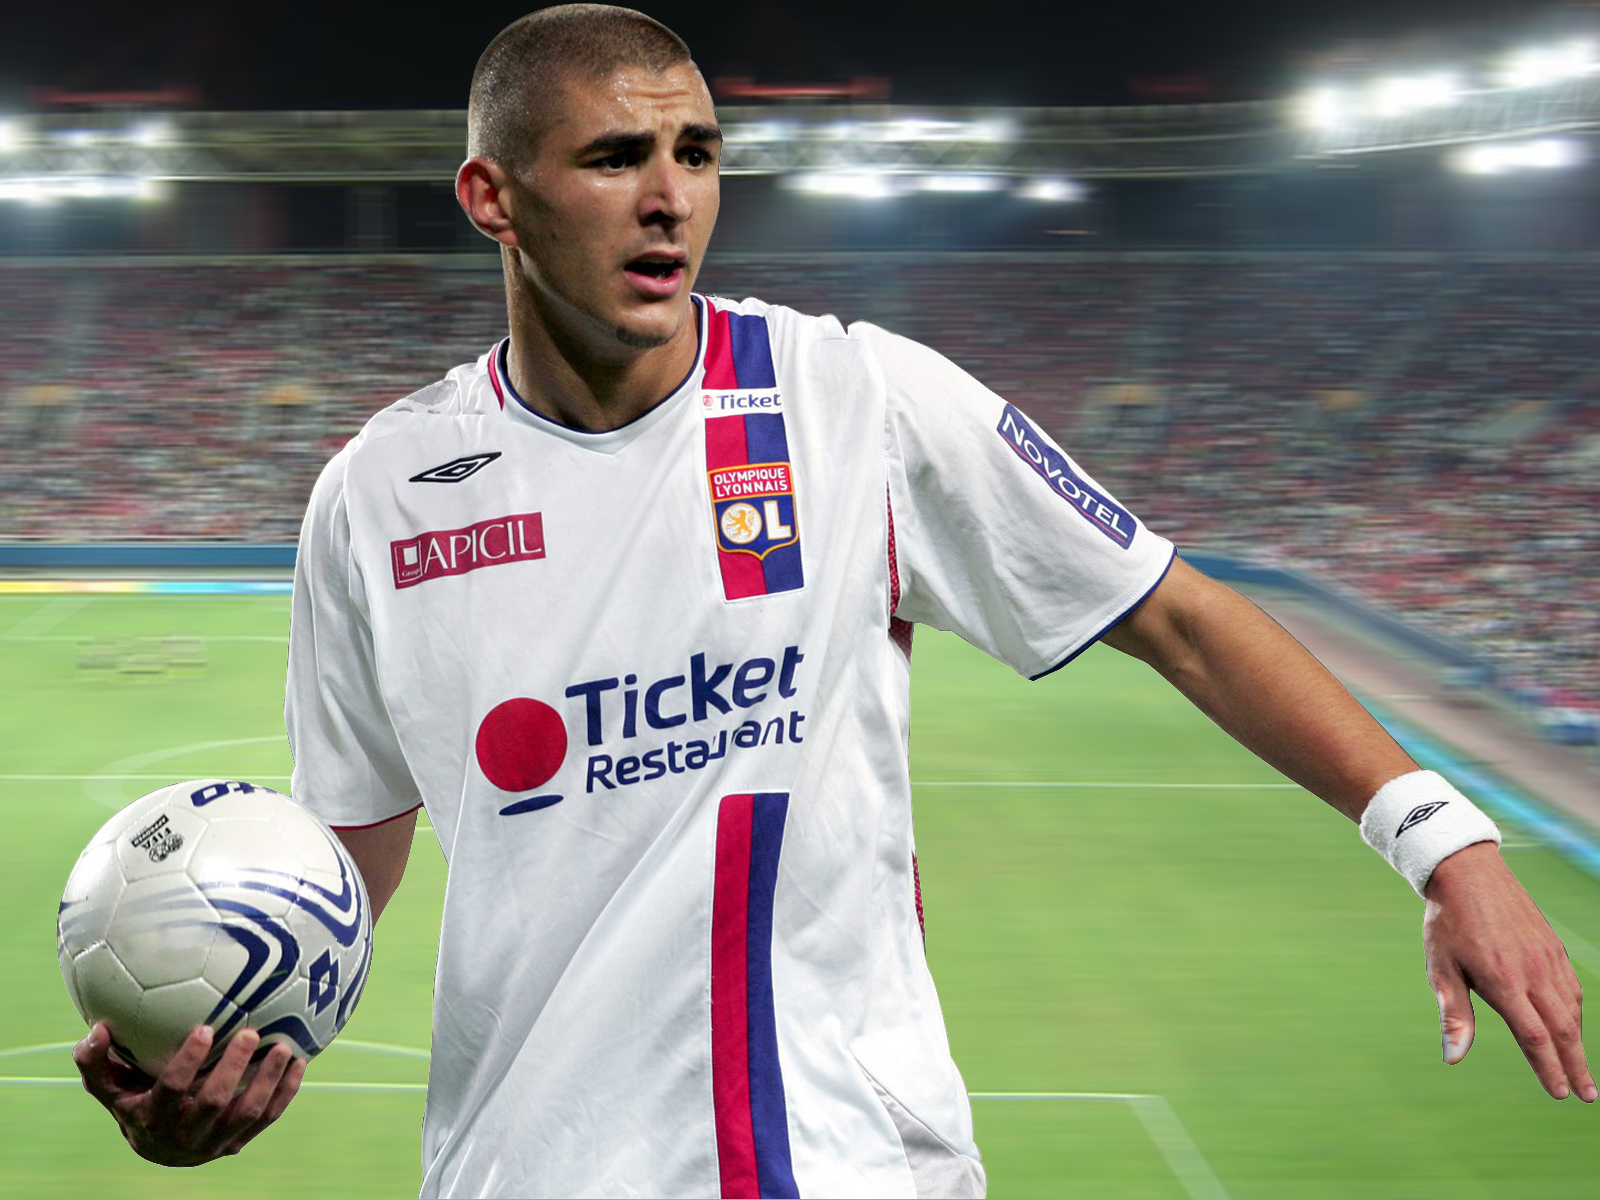 BENZEMA HD Wallpapers picture, BENZEMA HD Wallpapers photo, BENZEMA HD ...